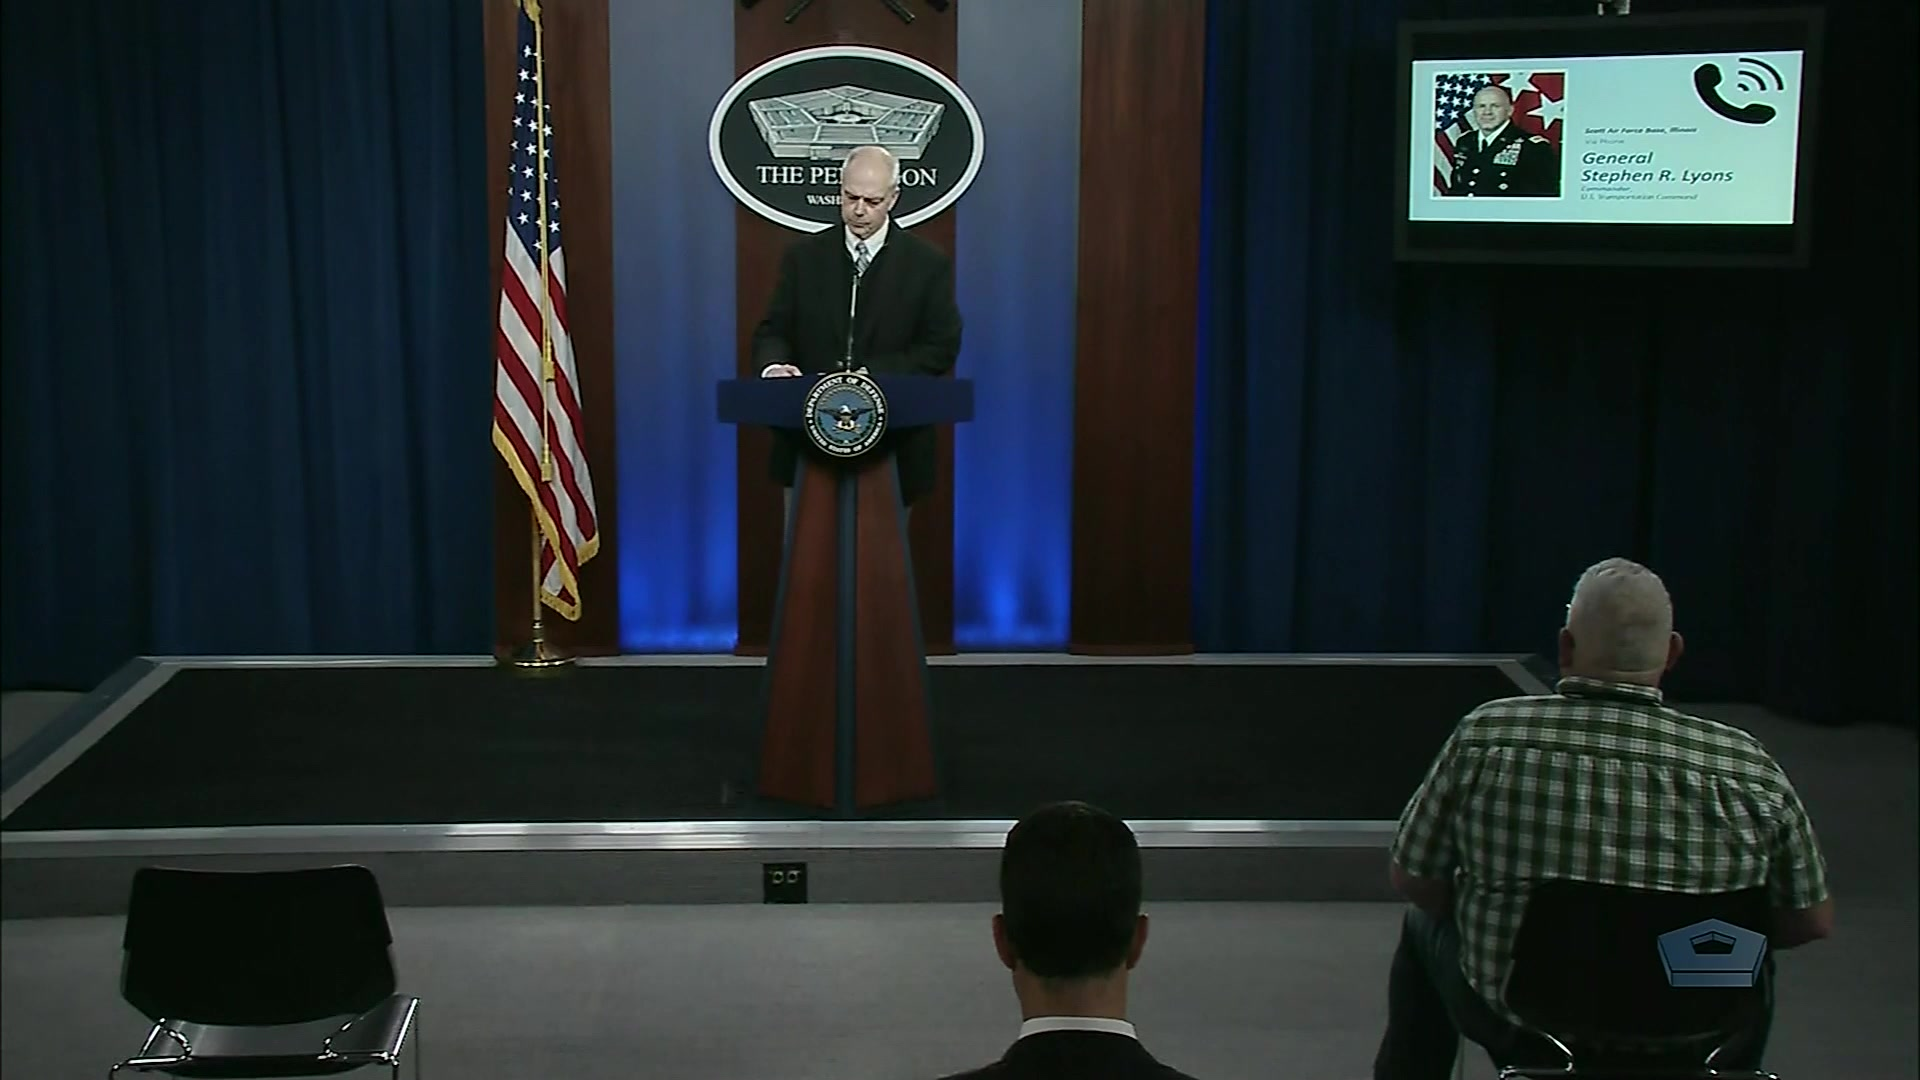 A civilian speaks at a lectern while an image of an Army general is on screen in the background.